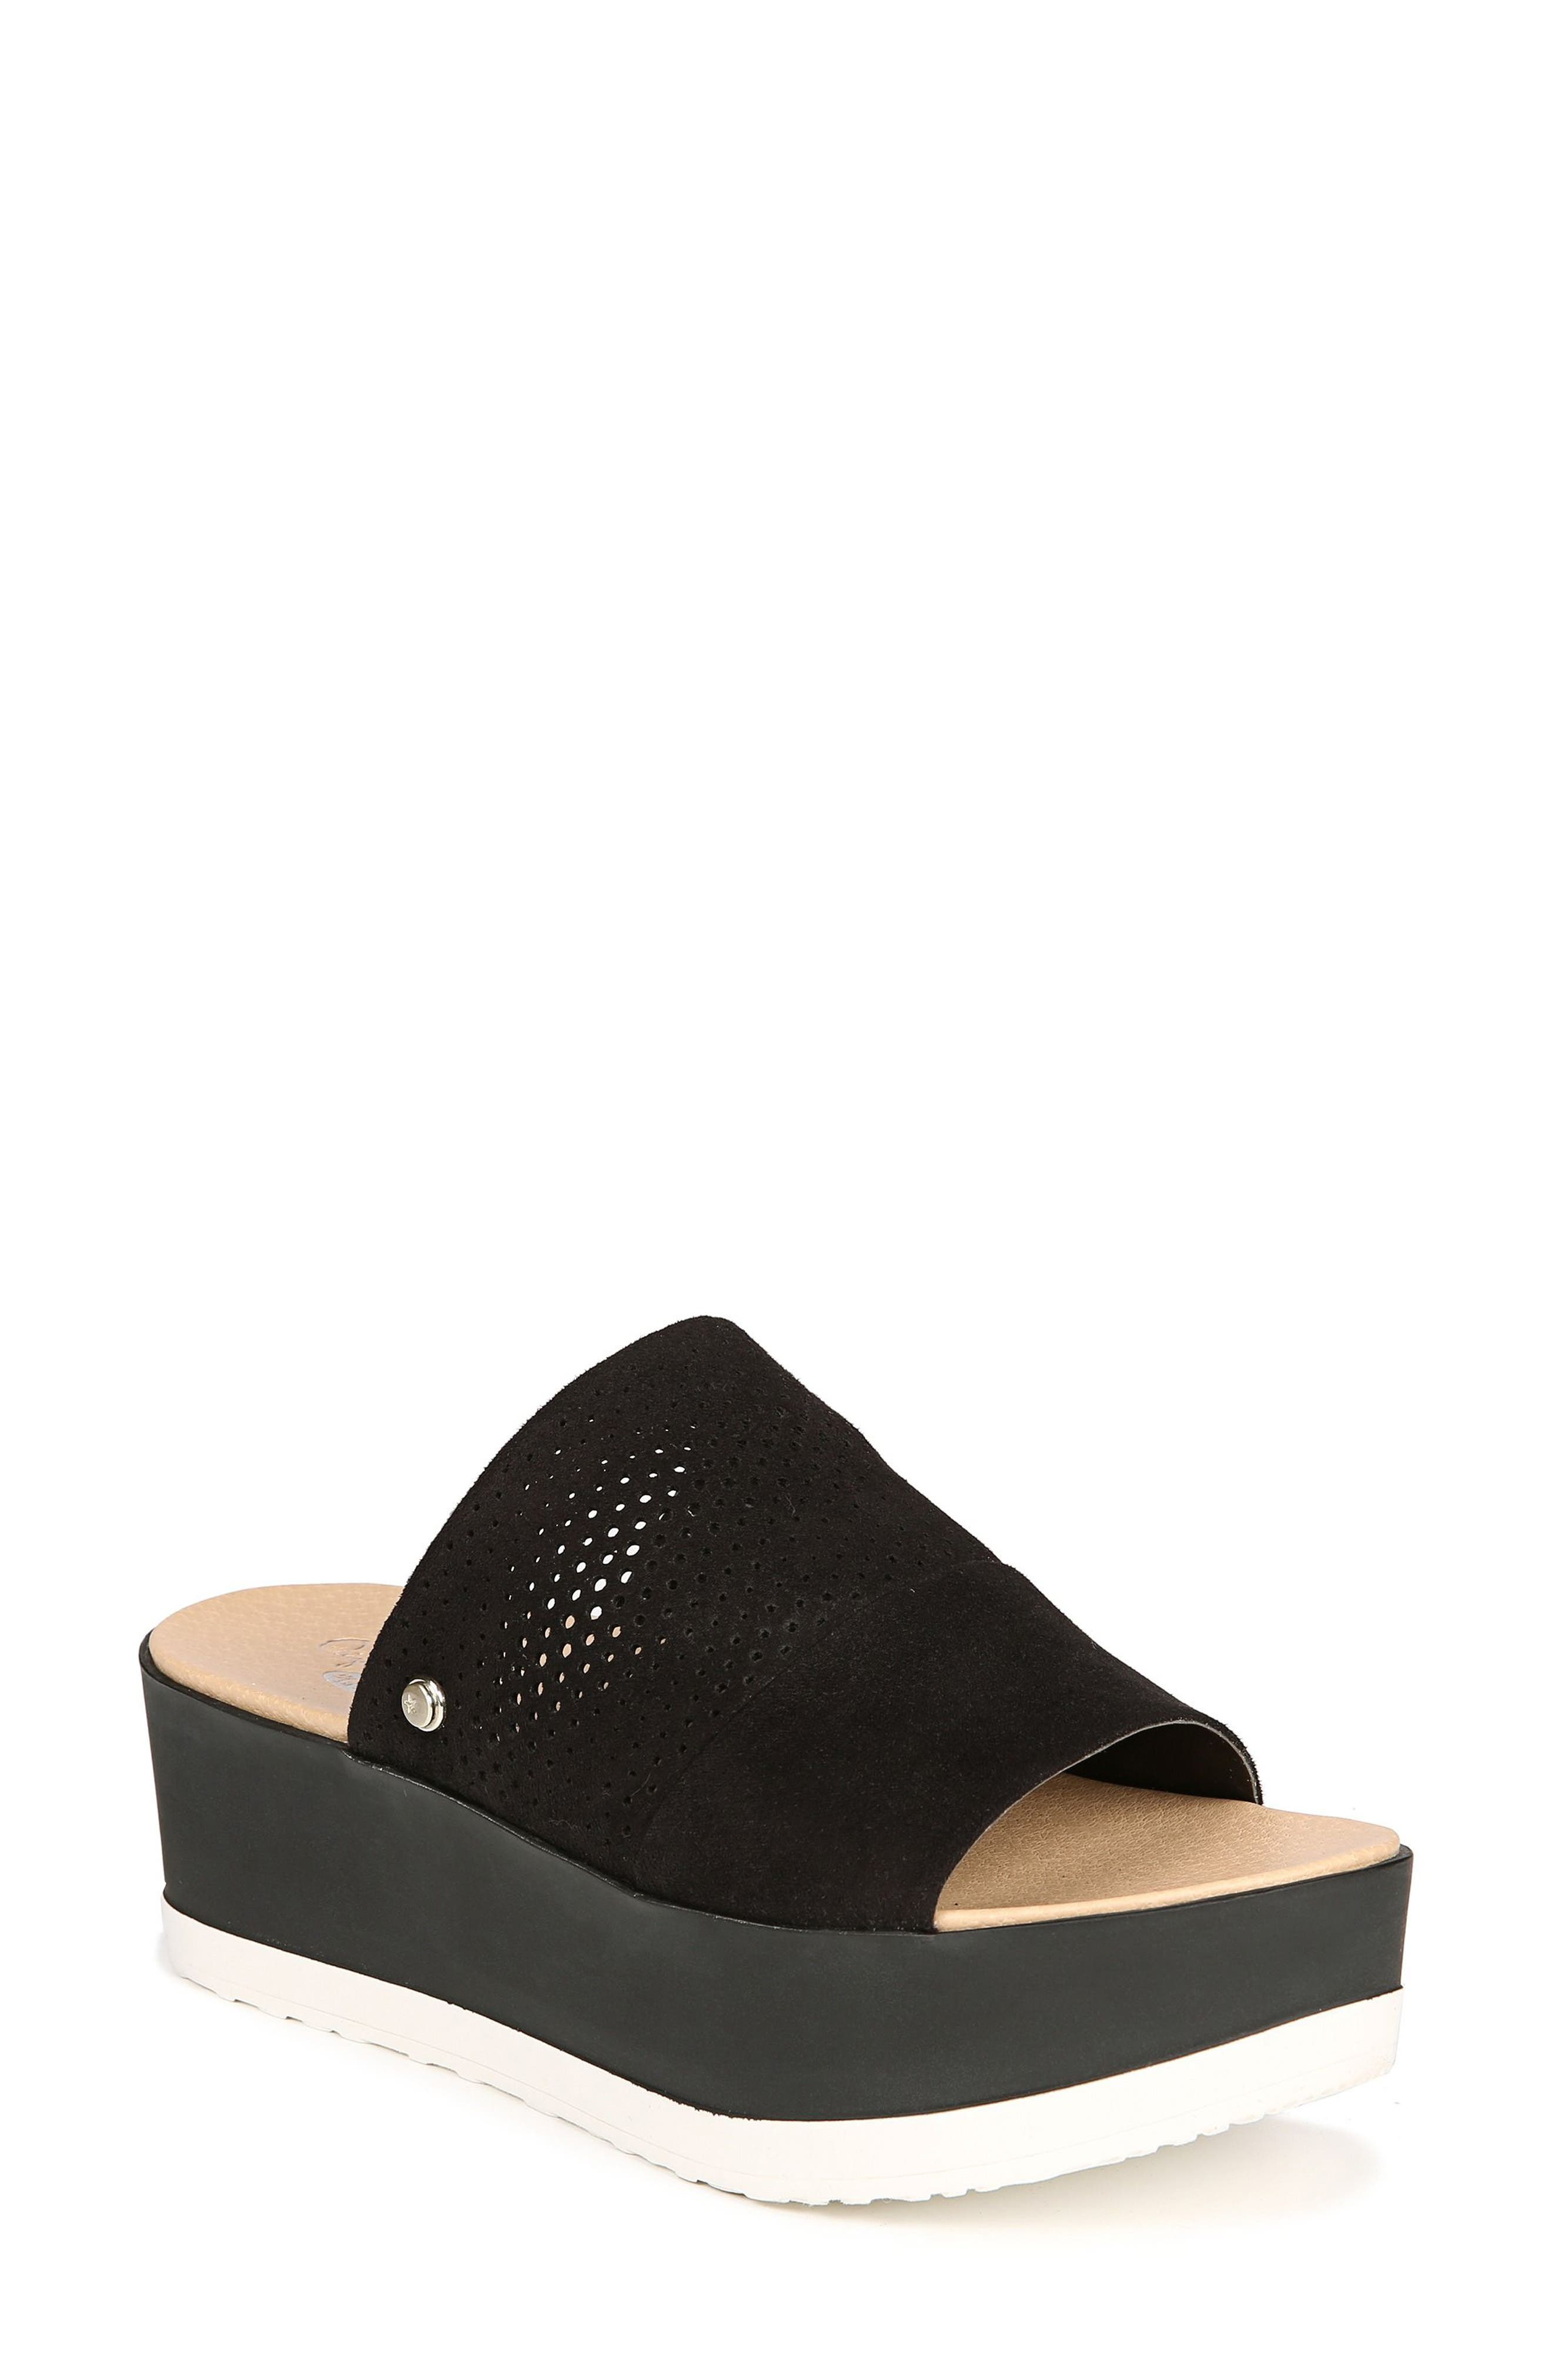 Collins Platform Sandal,                             Main thumbnail 1, color,                             BLACK FABRIC